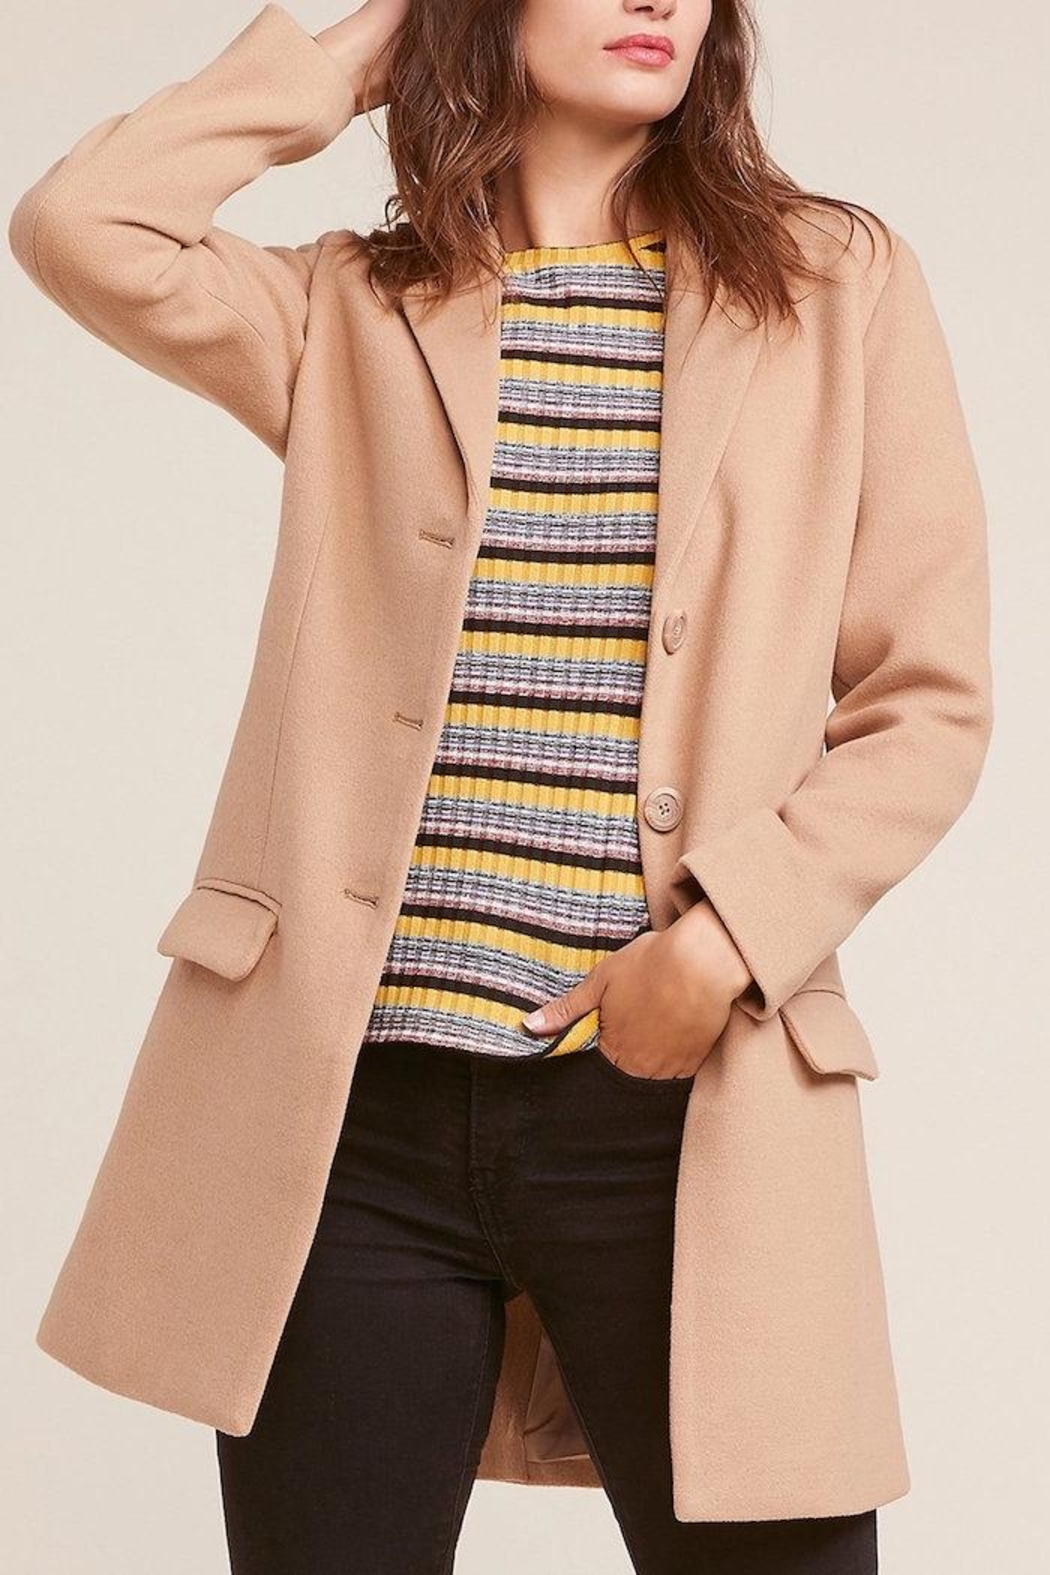 BB Dakota Twill Camel Coat - Main Image